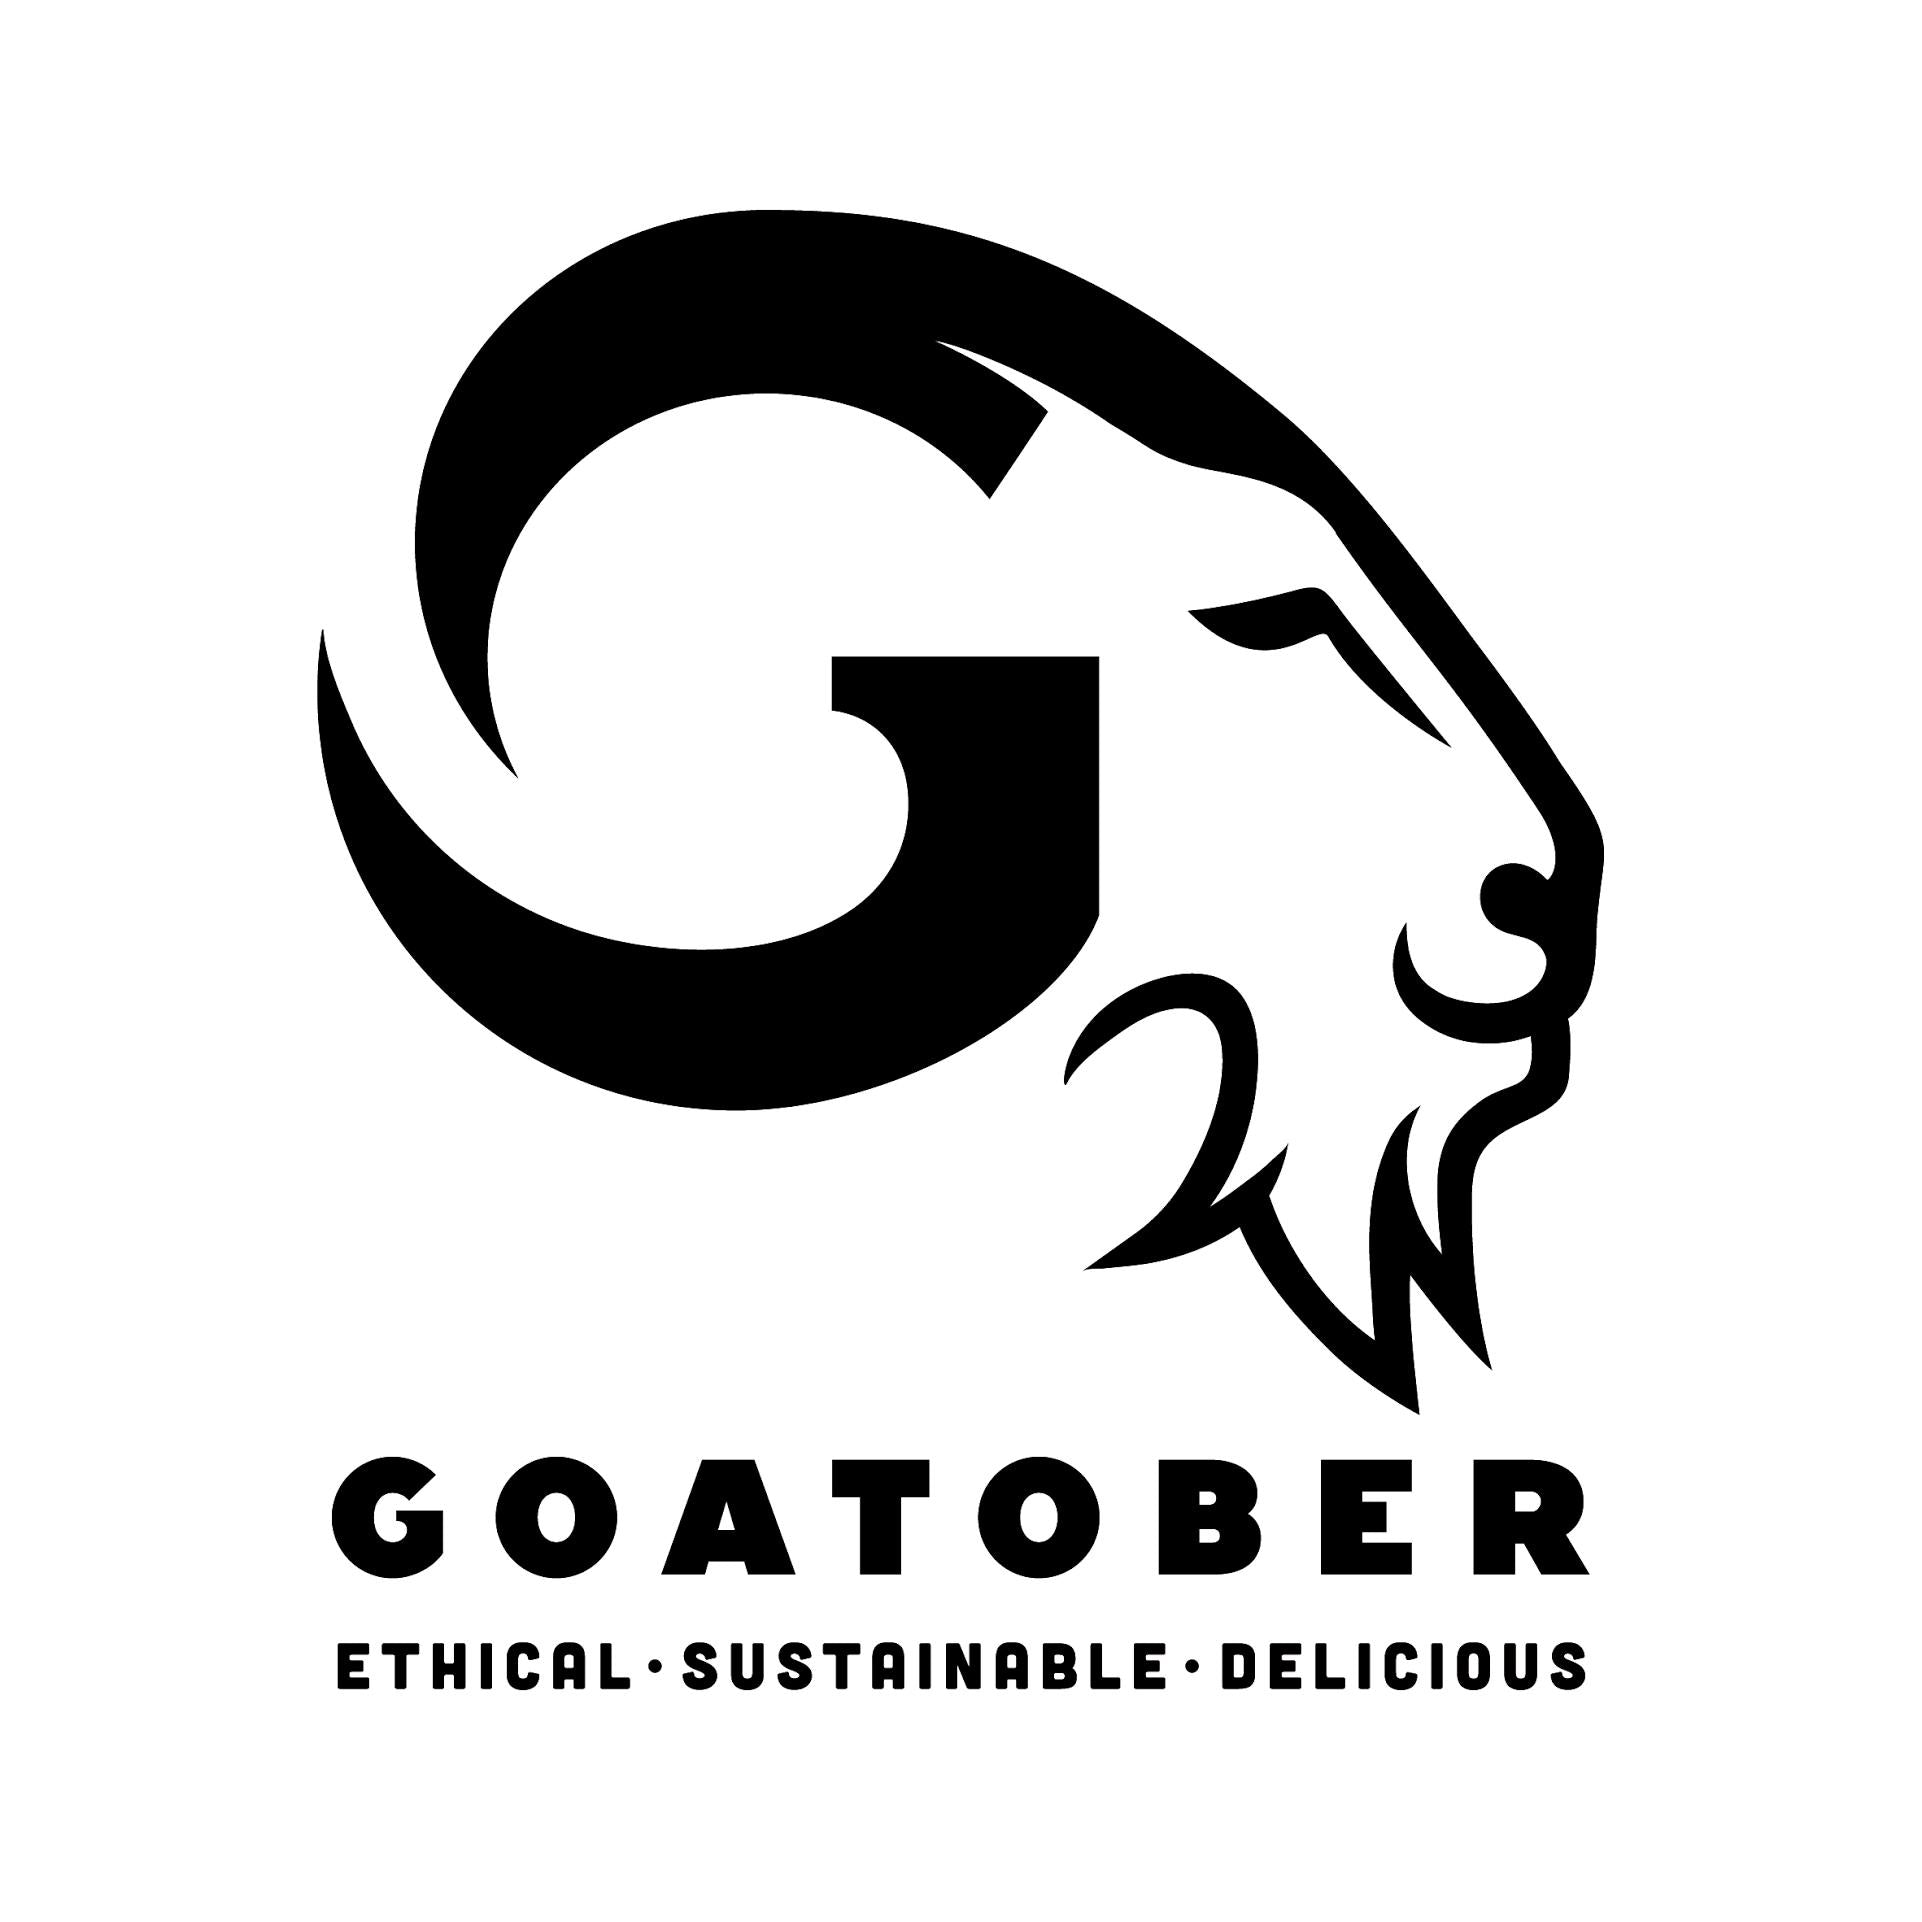 Goatober 2018 launches with events in London, Bristol, Manchester, Cornwall, Rome, Frankfurt, Nantes, Amsterdam, New York and Ibiza